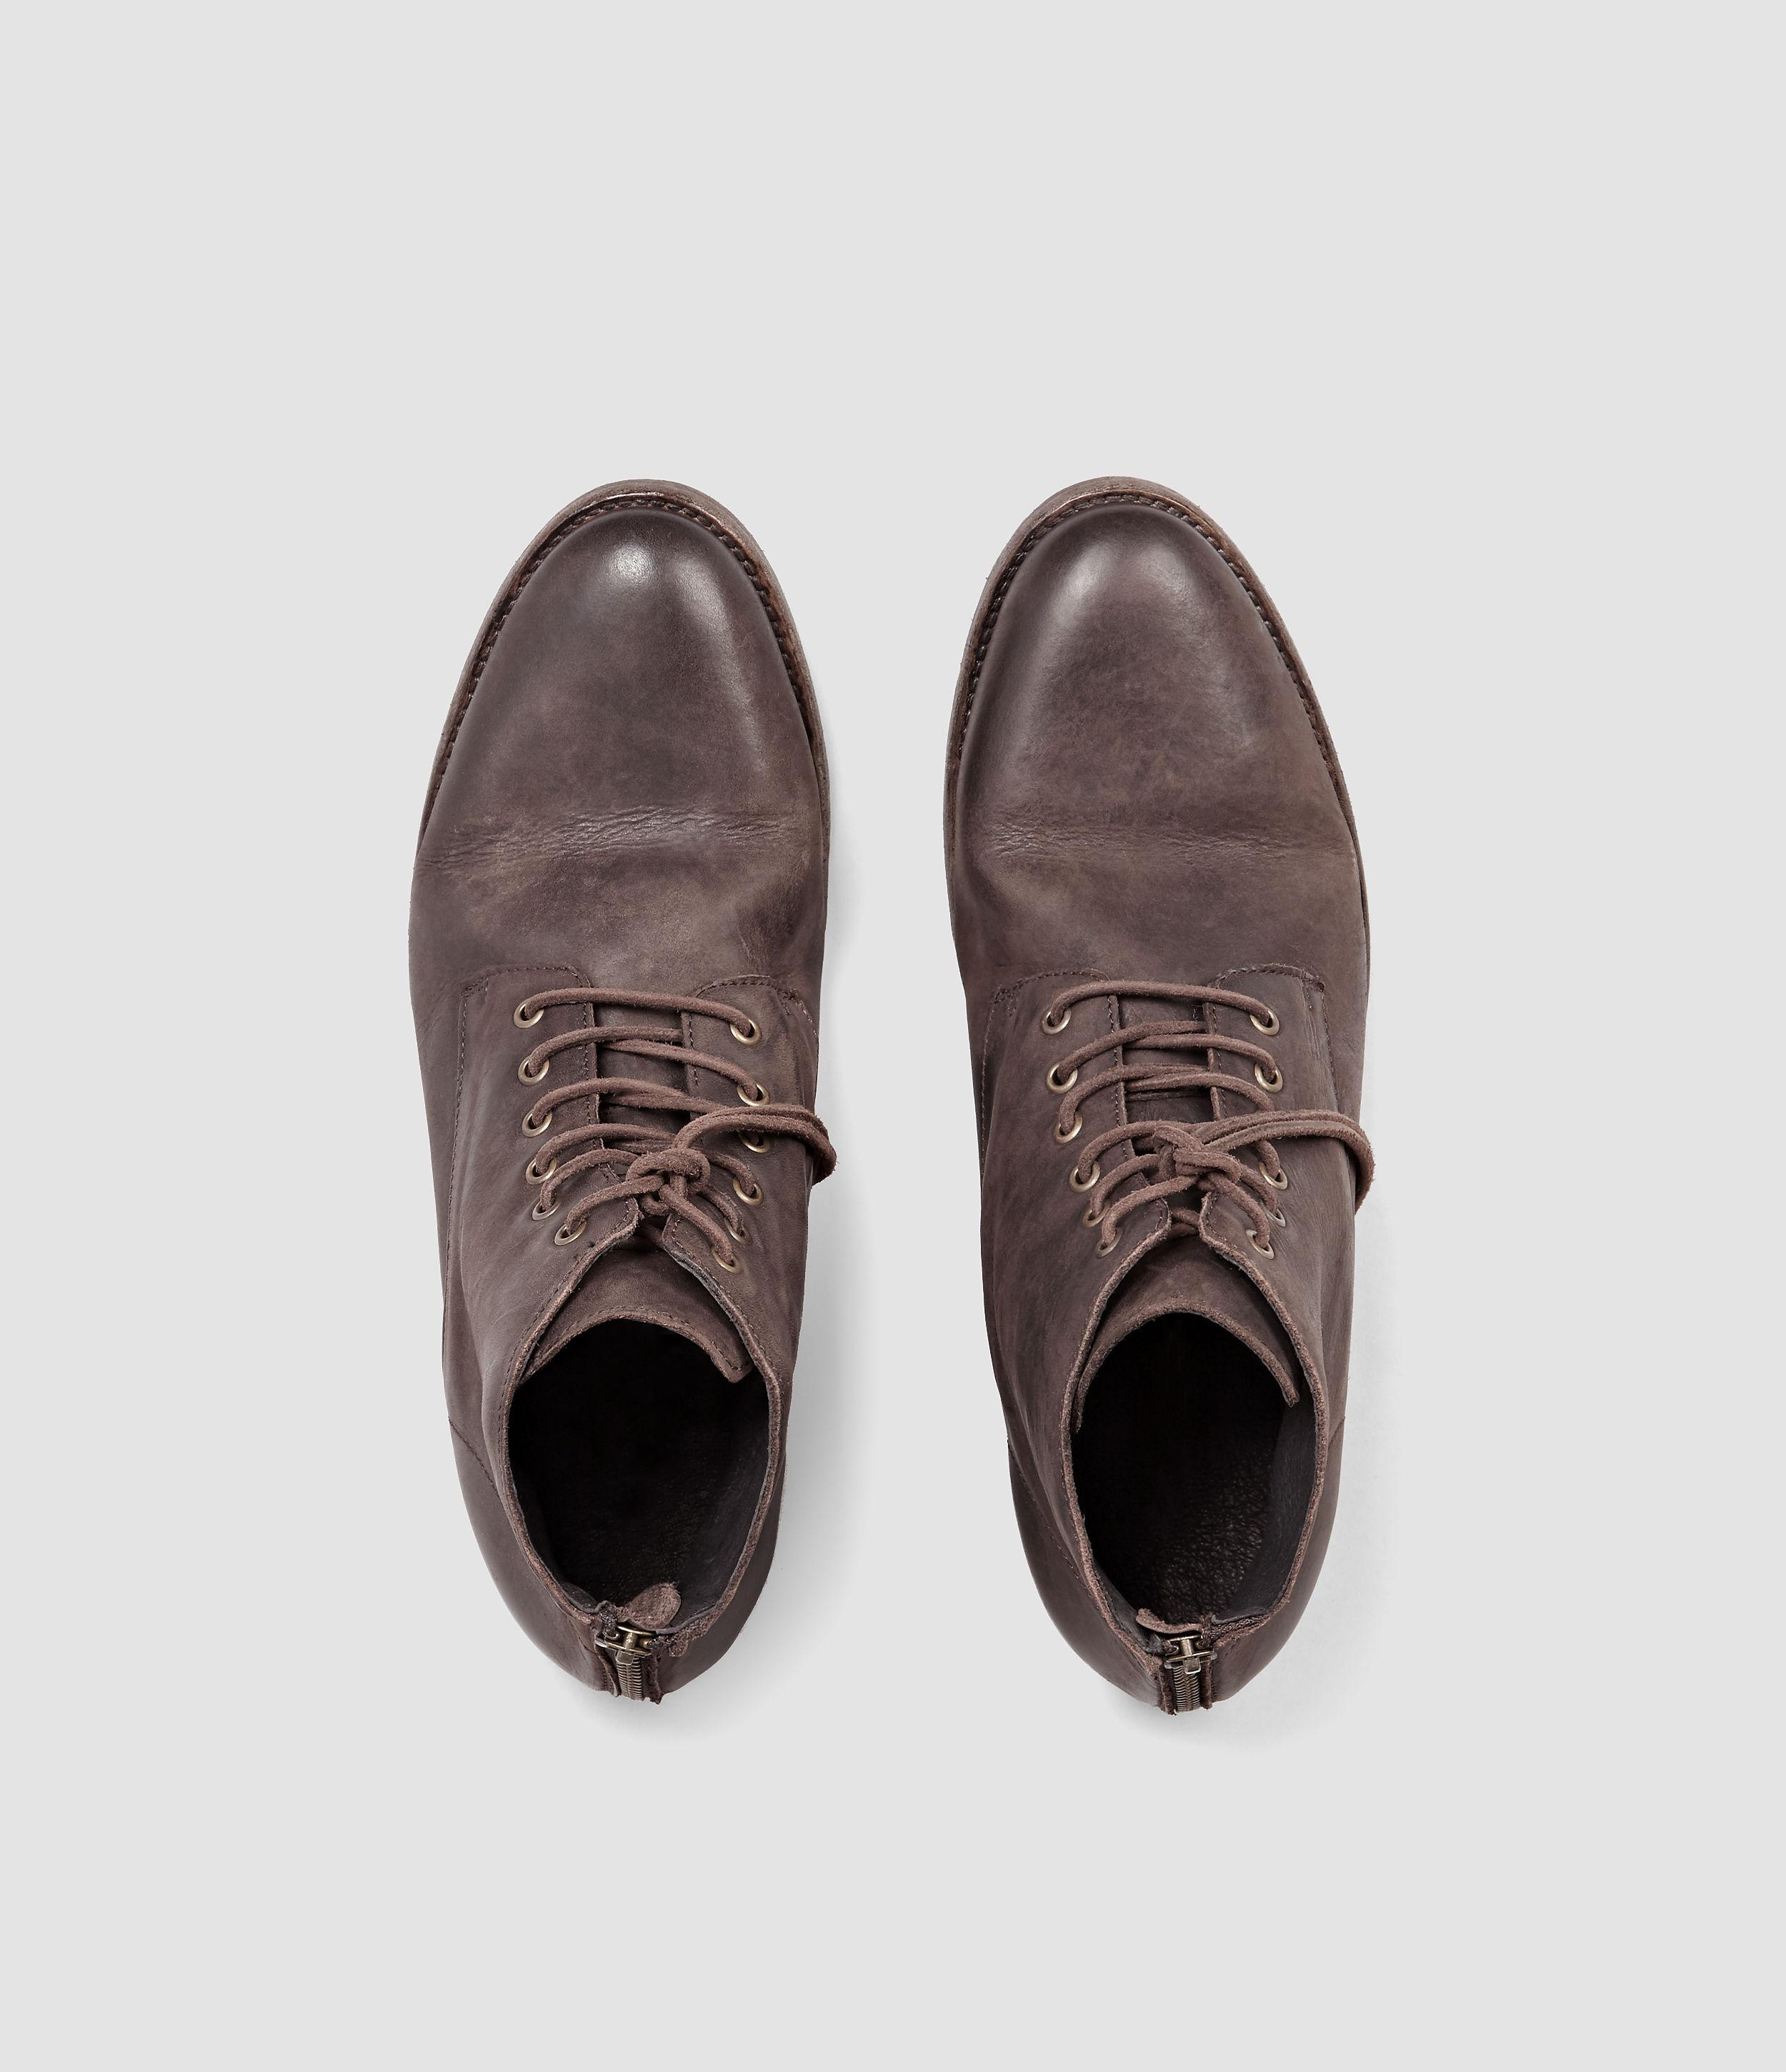 Allsaints Snare Boot Usa Usa In Brown Lyst